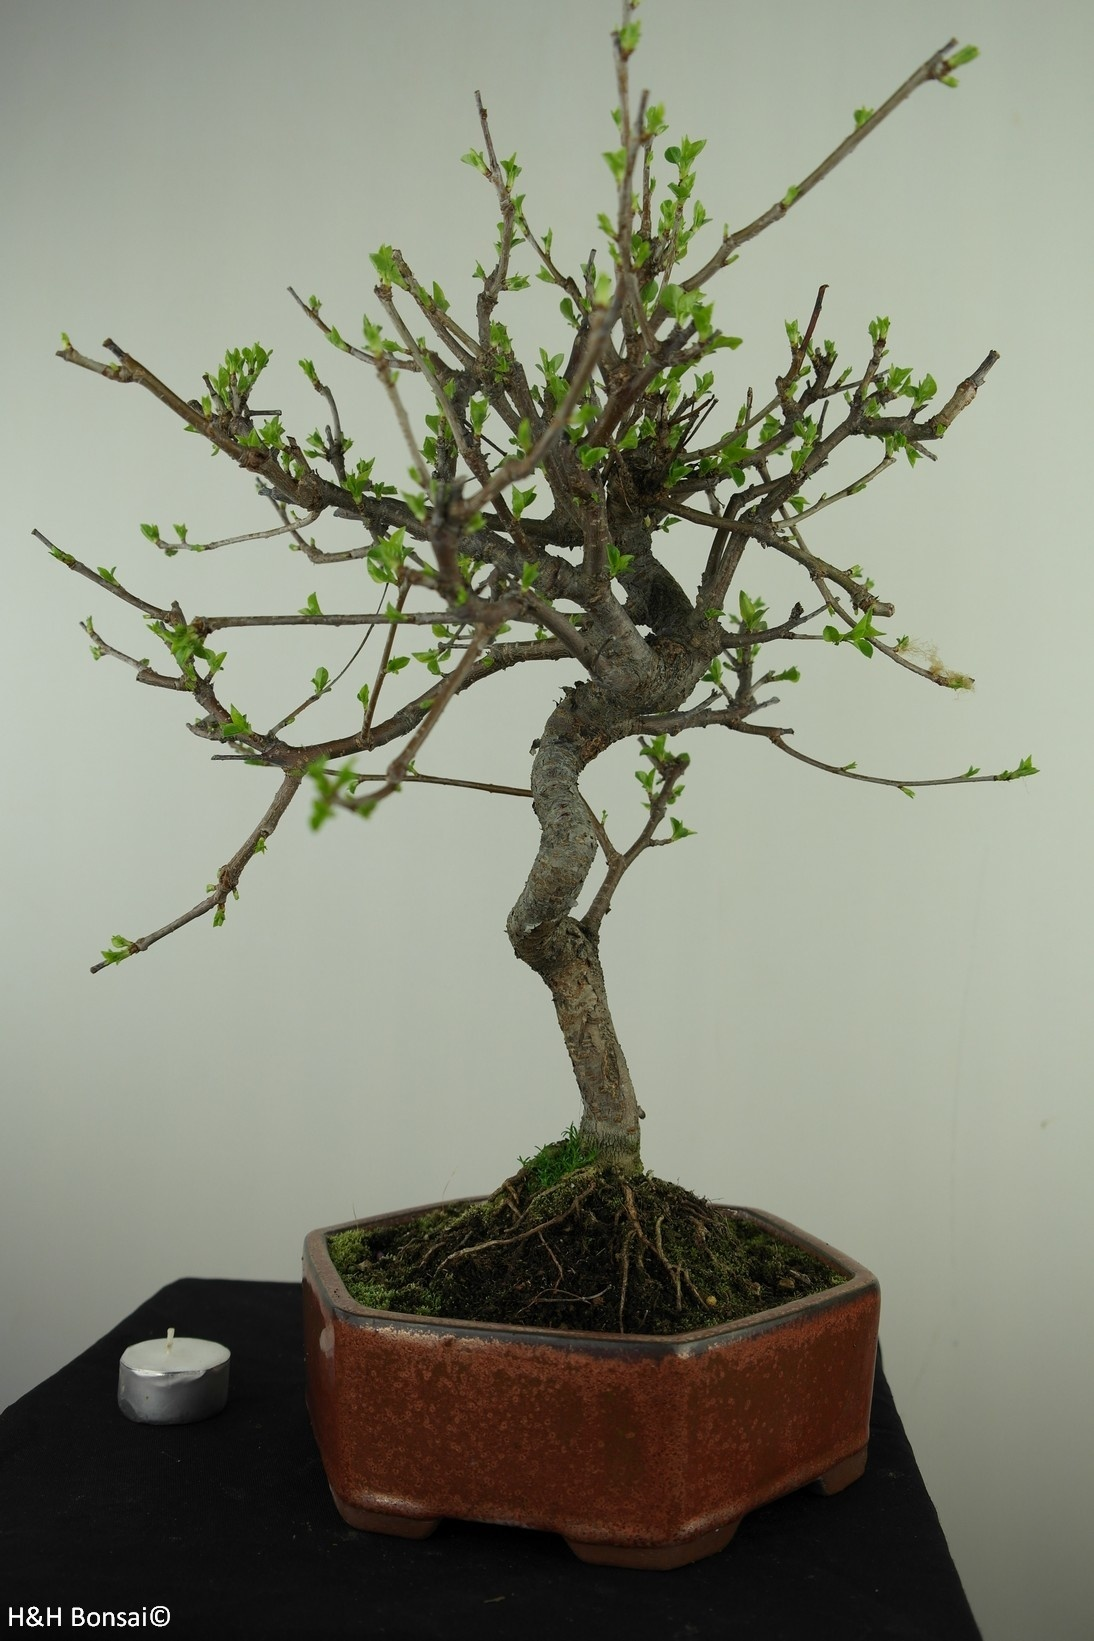 Bonsai Prunus mahaleb, Mahaleb cherry, no. 7668